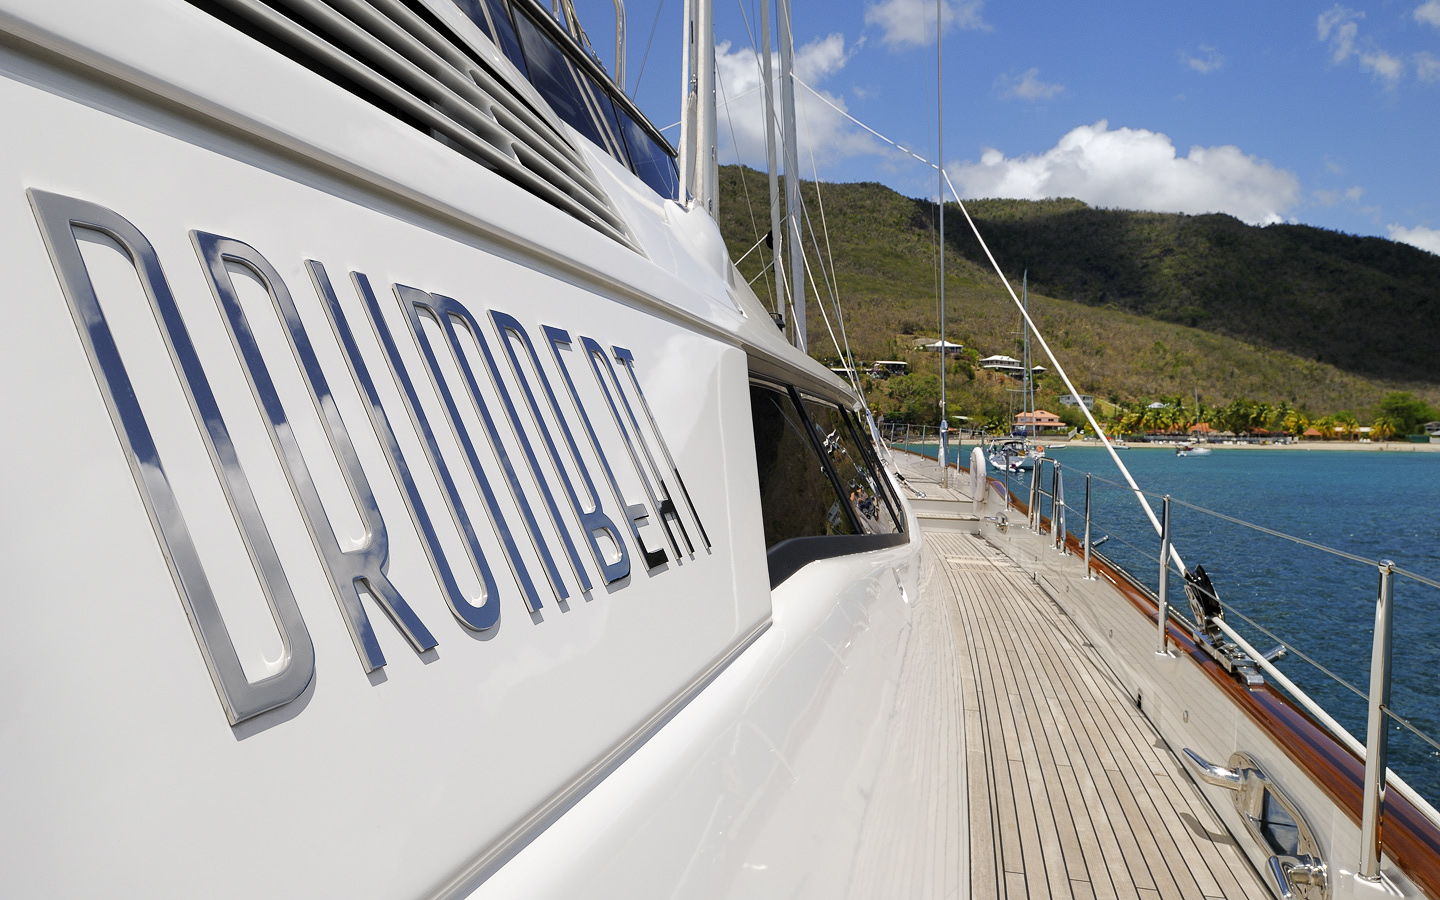 Yacht DRUMBEAT - Alloy Yachts - Scuppers, Caribbean